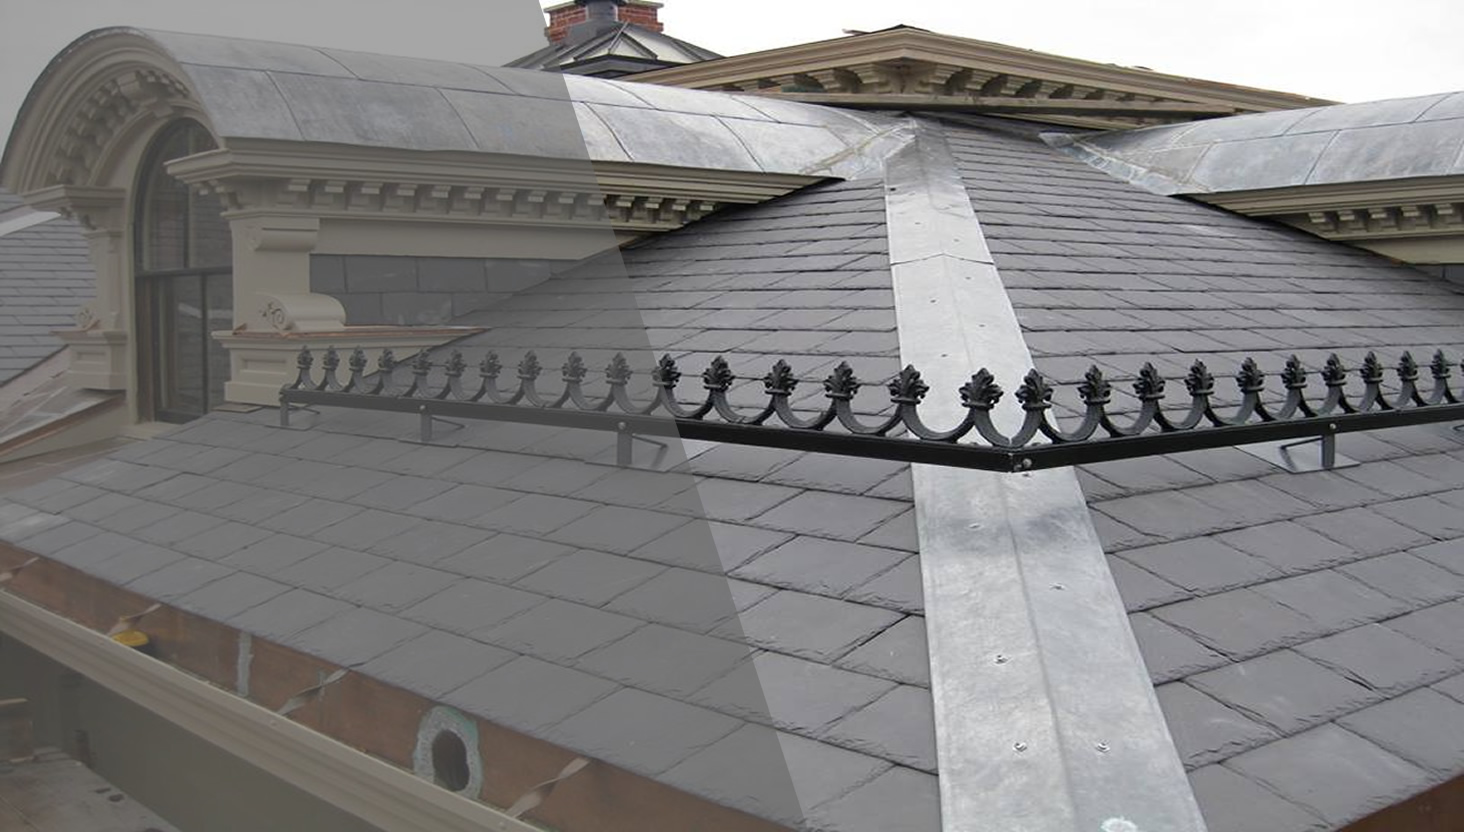 Slate Roof - Quality Craftsmanship since 1919 - By J.B Kidney Roofing, Salem, MA